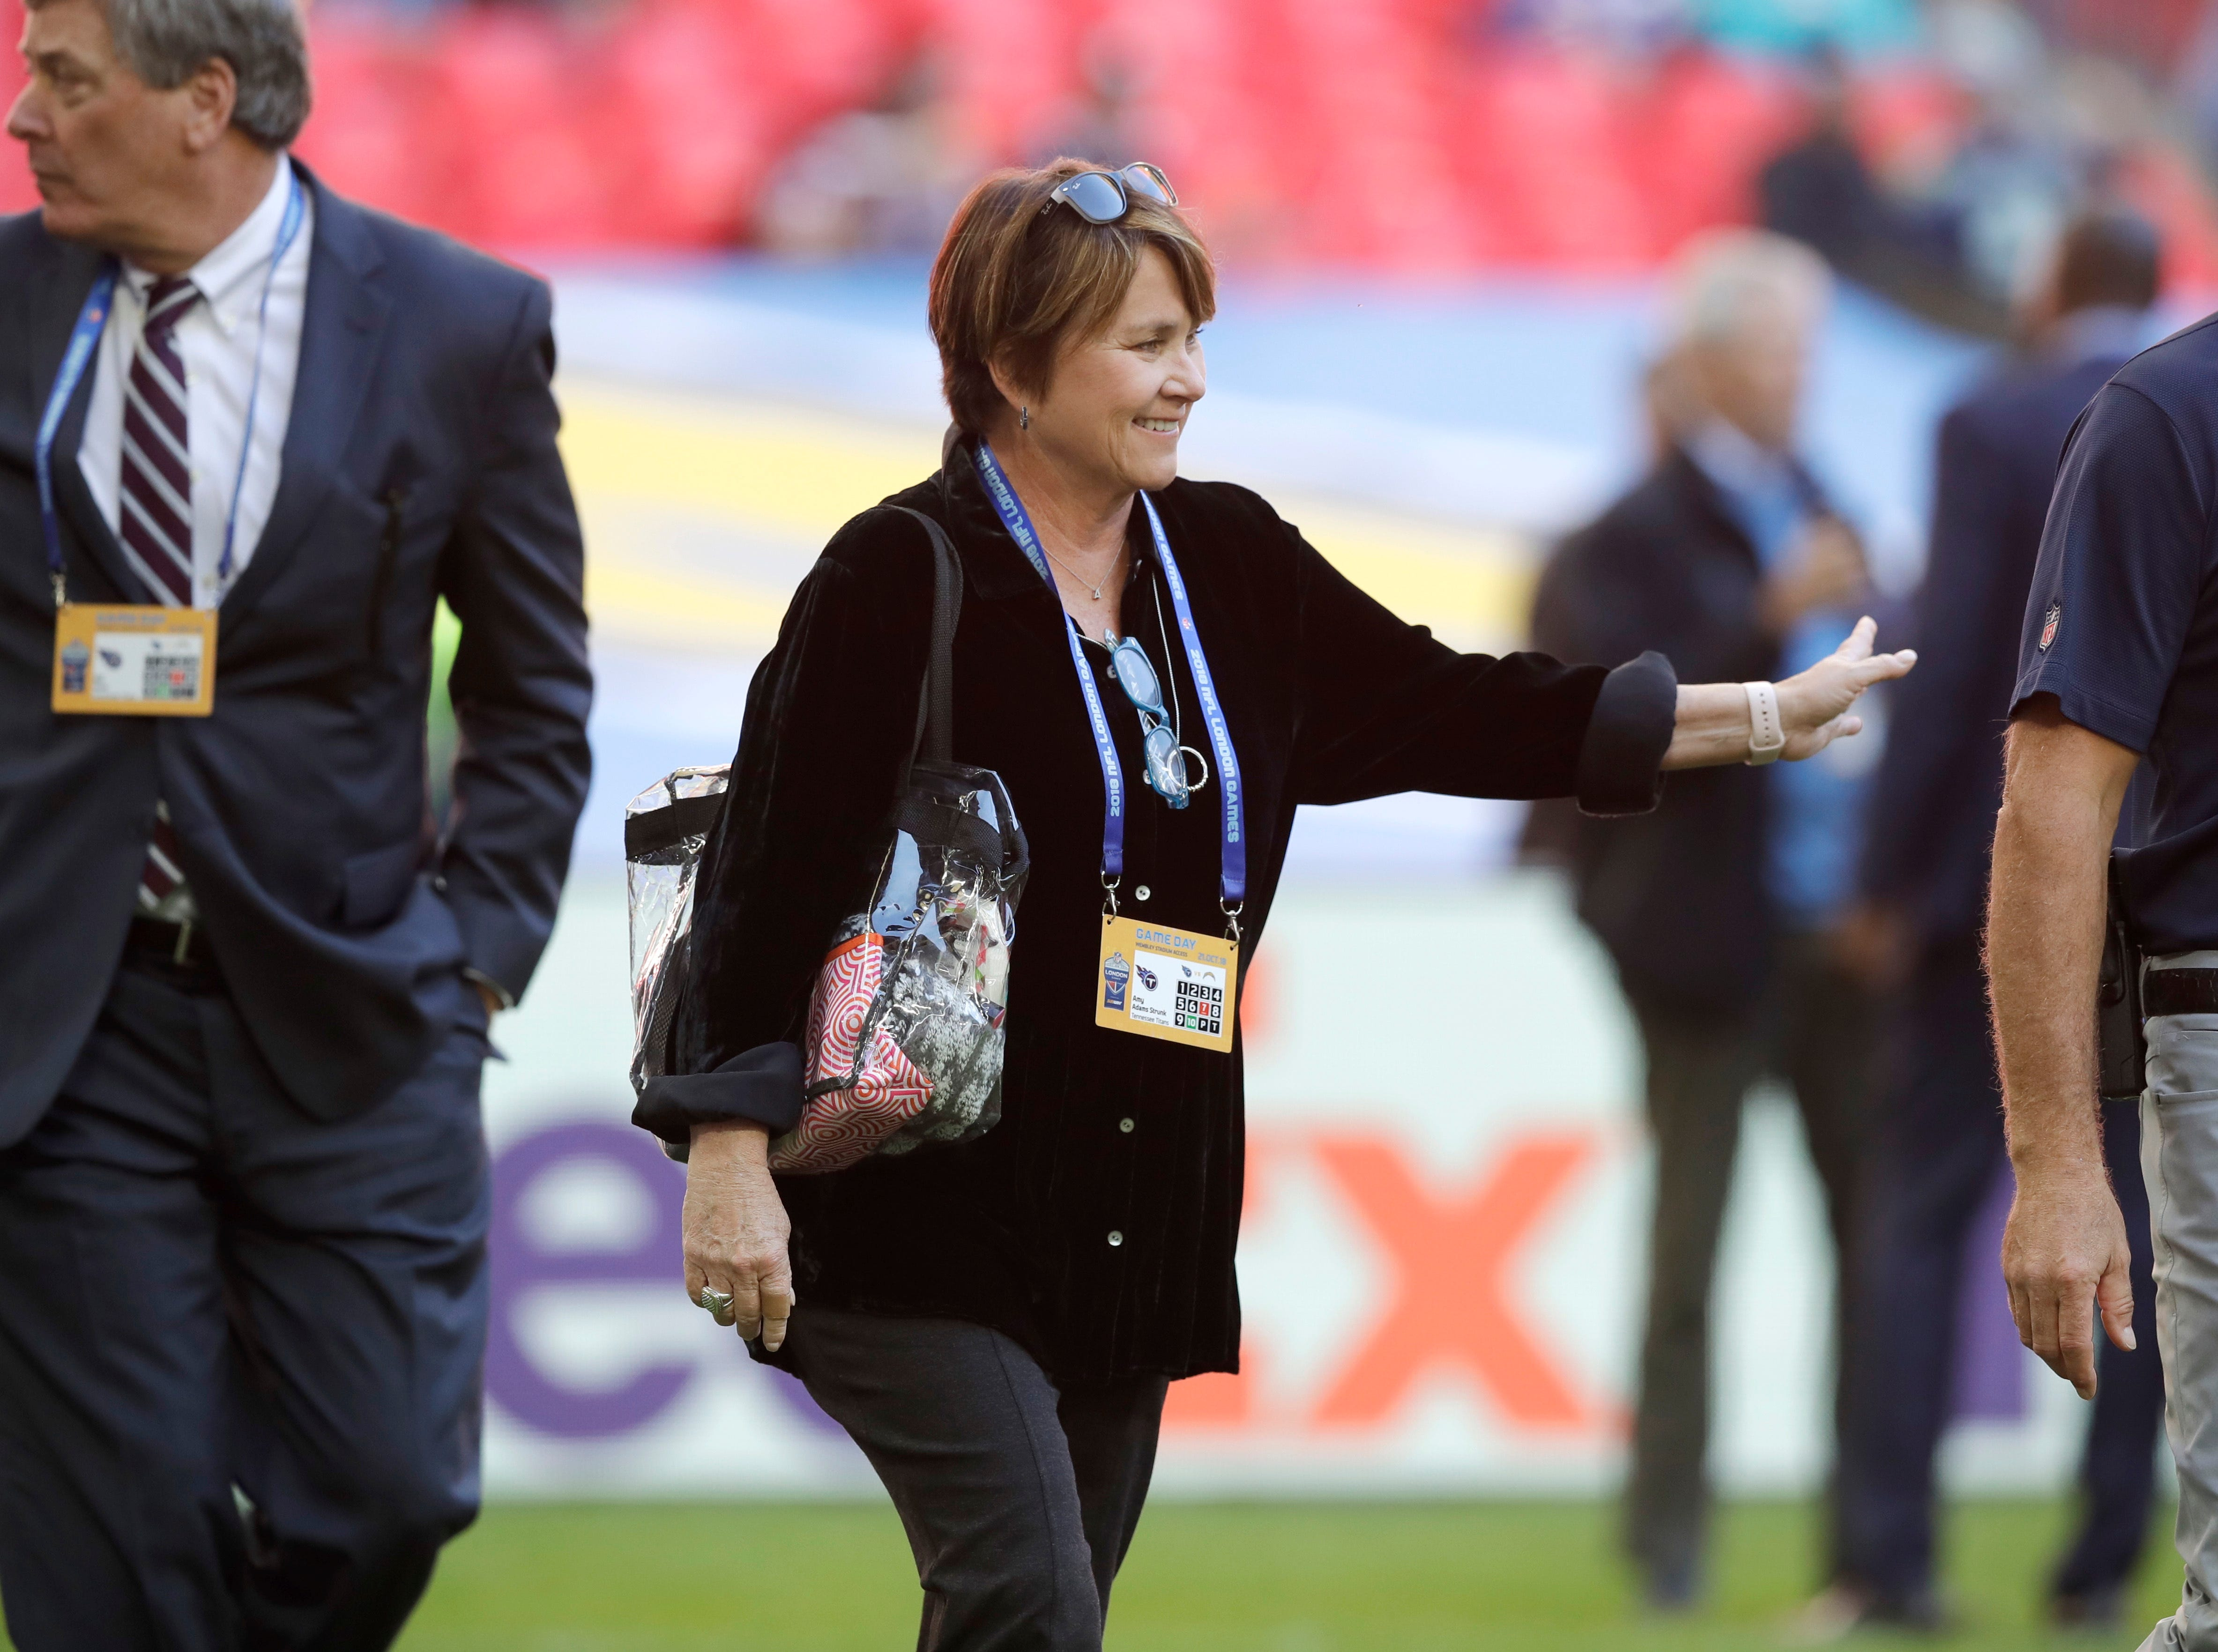 Amy Adams Strunk, center, the controlling owner of the Tennessee Titans smiles before an NFL football game against Los Angeles Chargers at Wembley stadium in London, Sunday, Oct. 21, 2018.